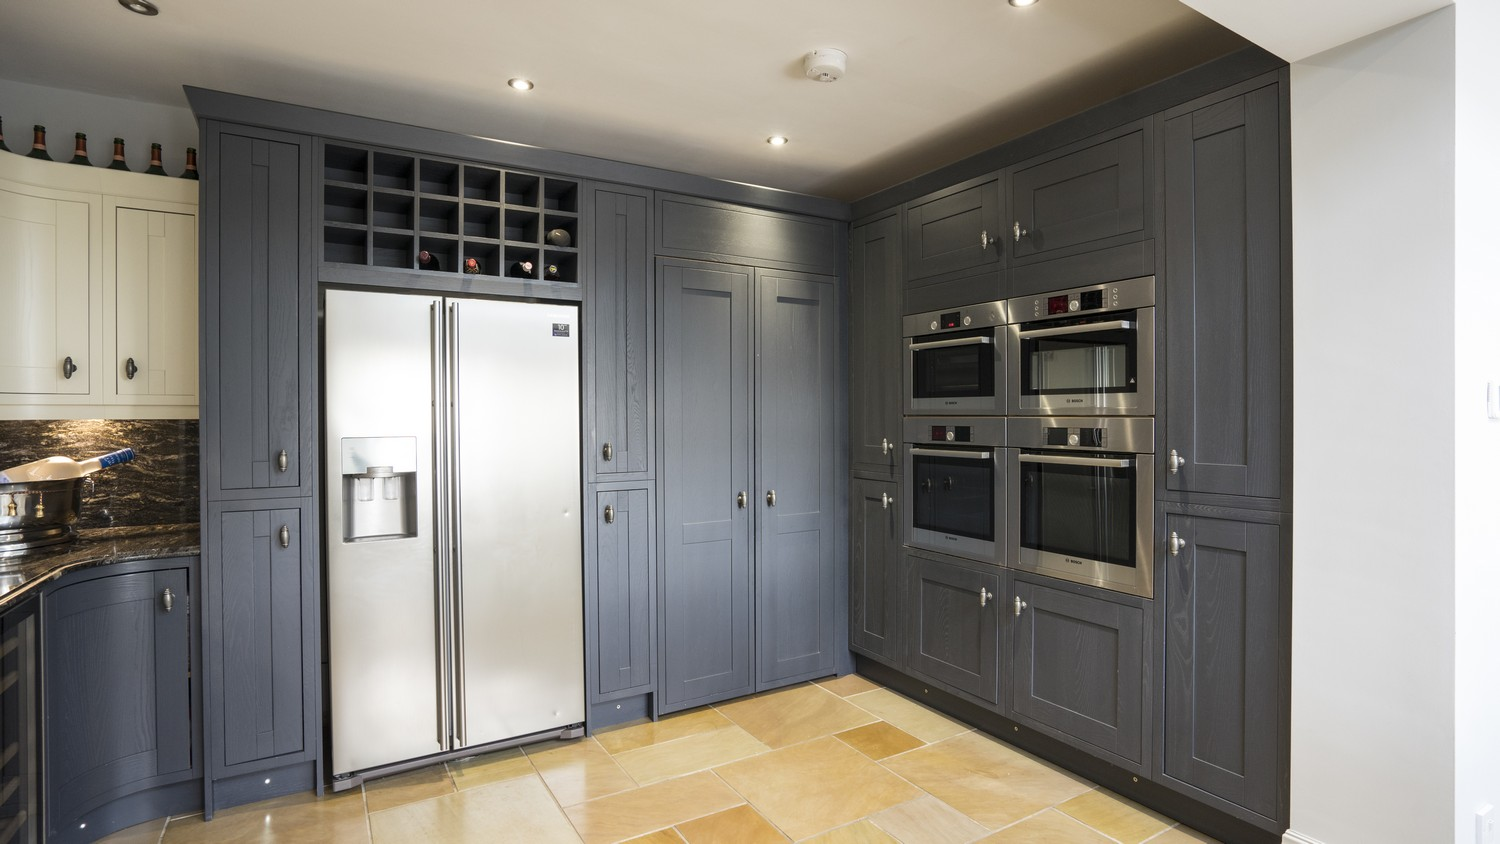 Close up of the larder cupboard housing the various built in appliances, wine rack and hidden entry to the utility room.